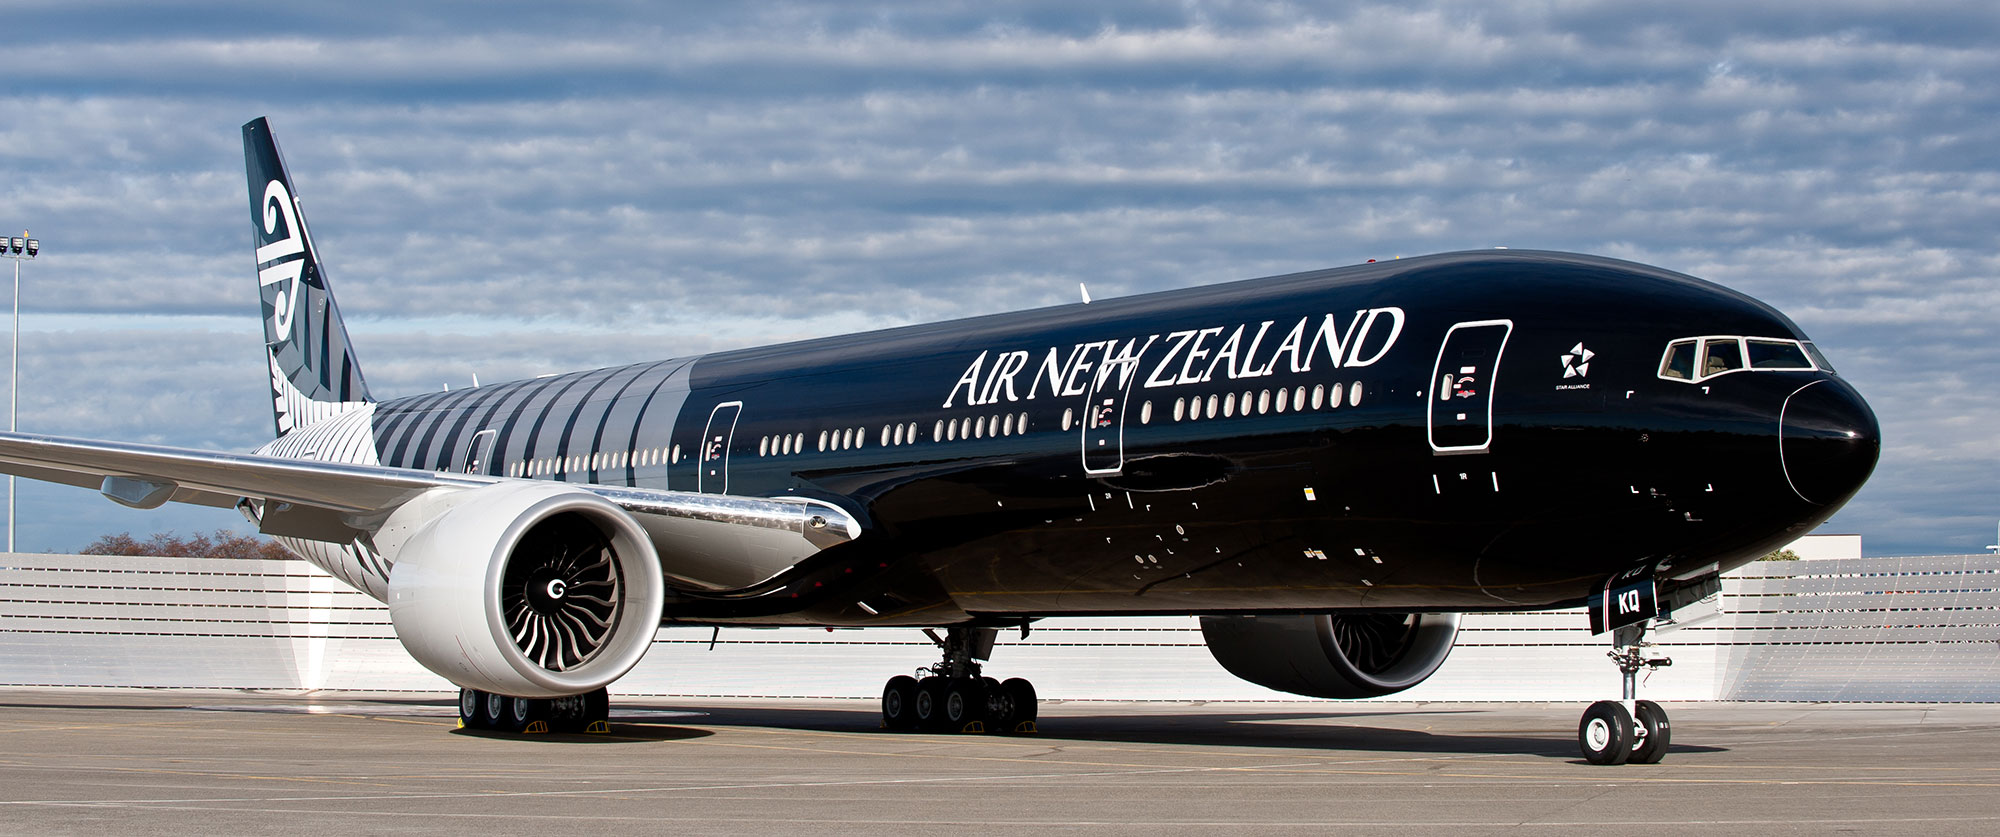 Air New Zealand - black plane exterior